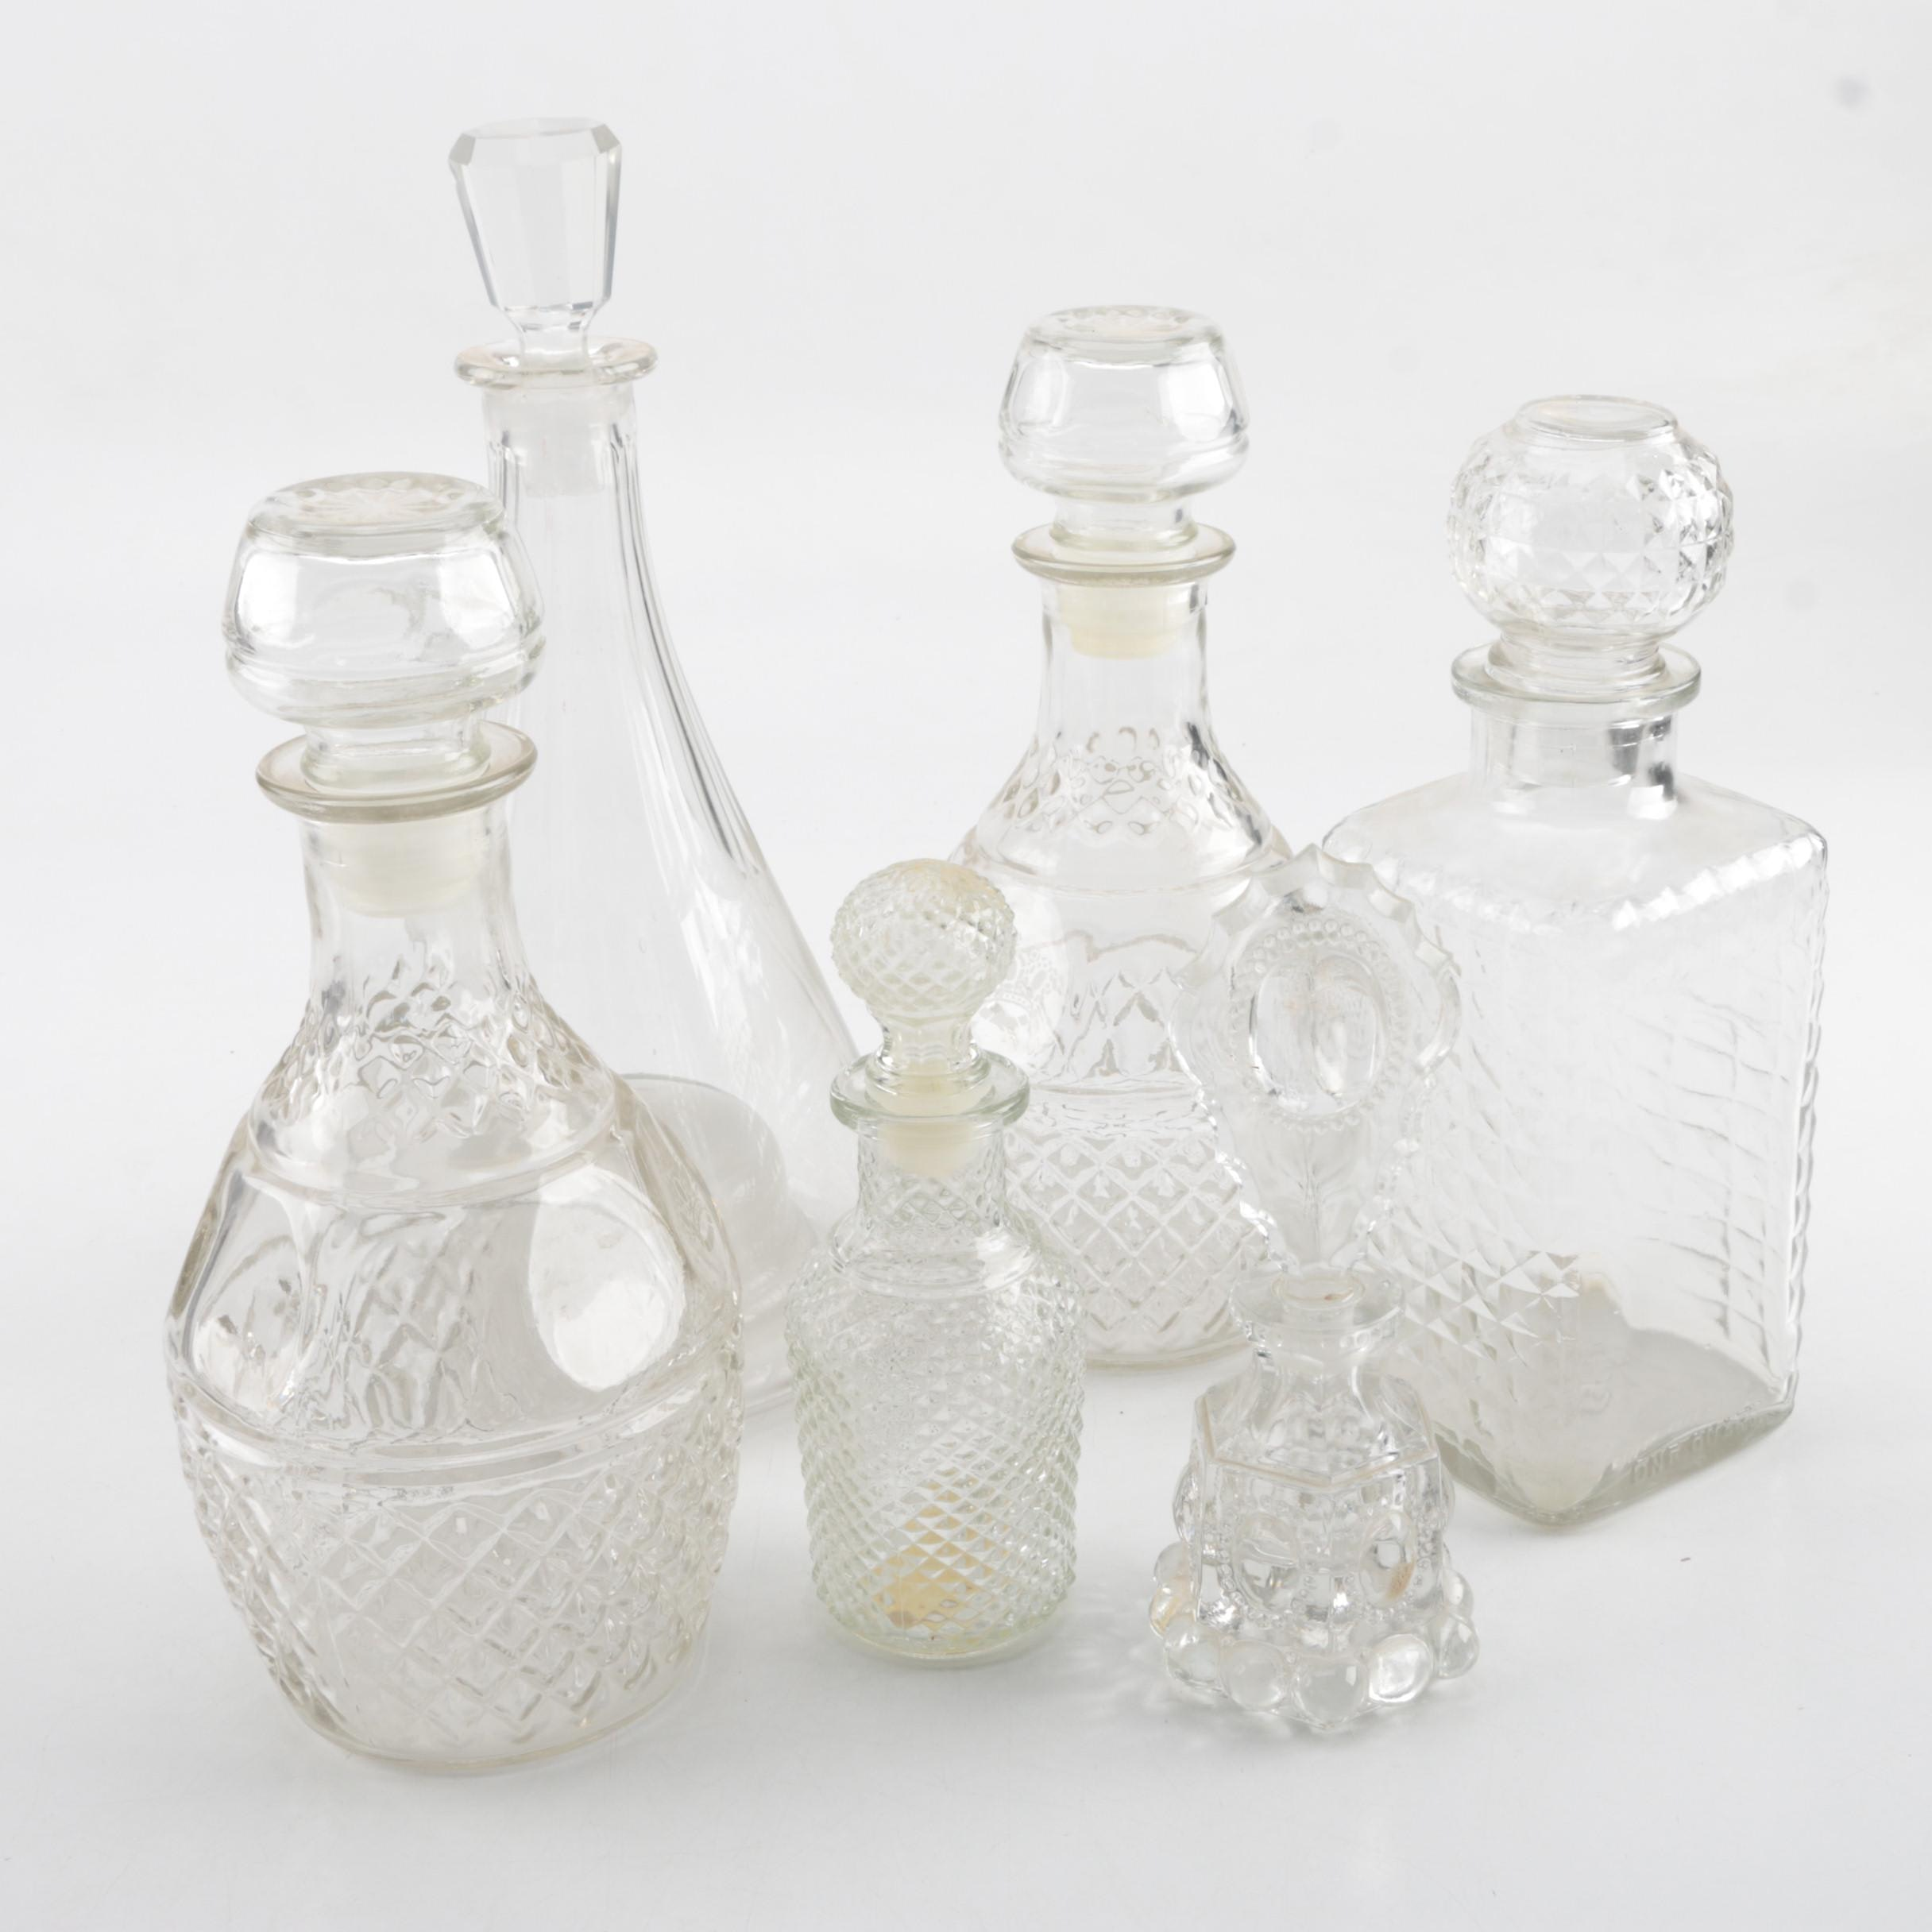 Glass Decanters and Perfume Bottles